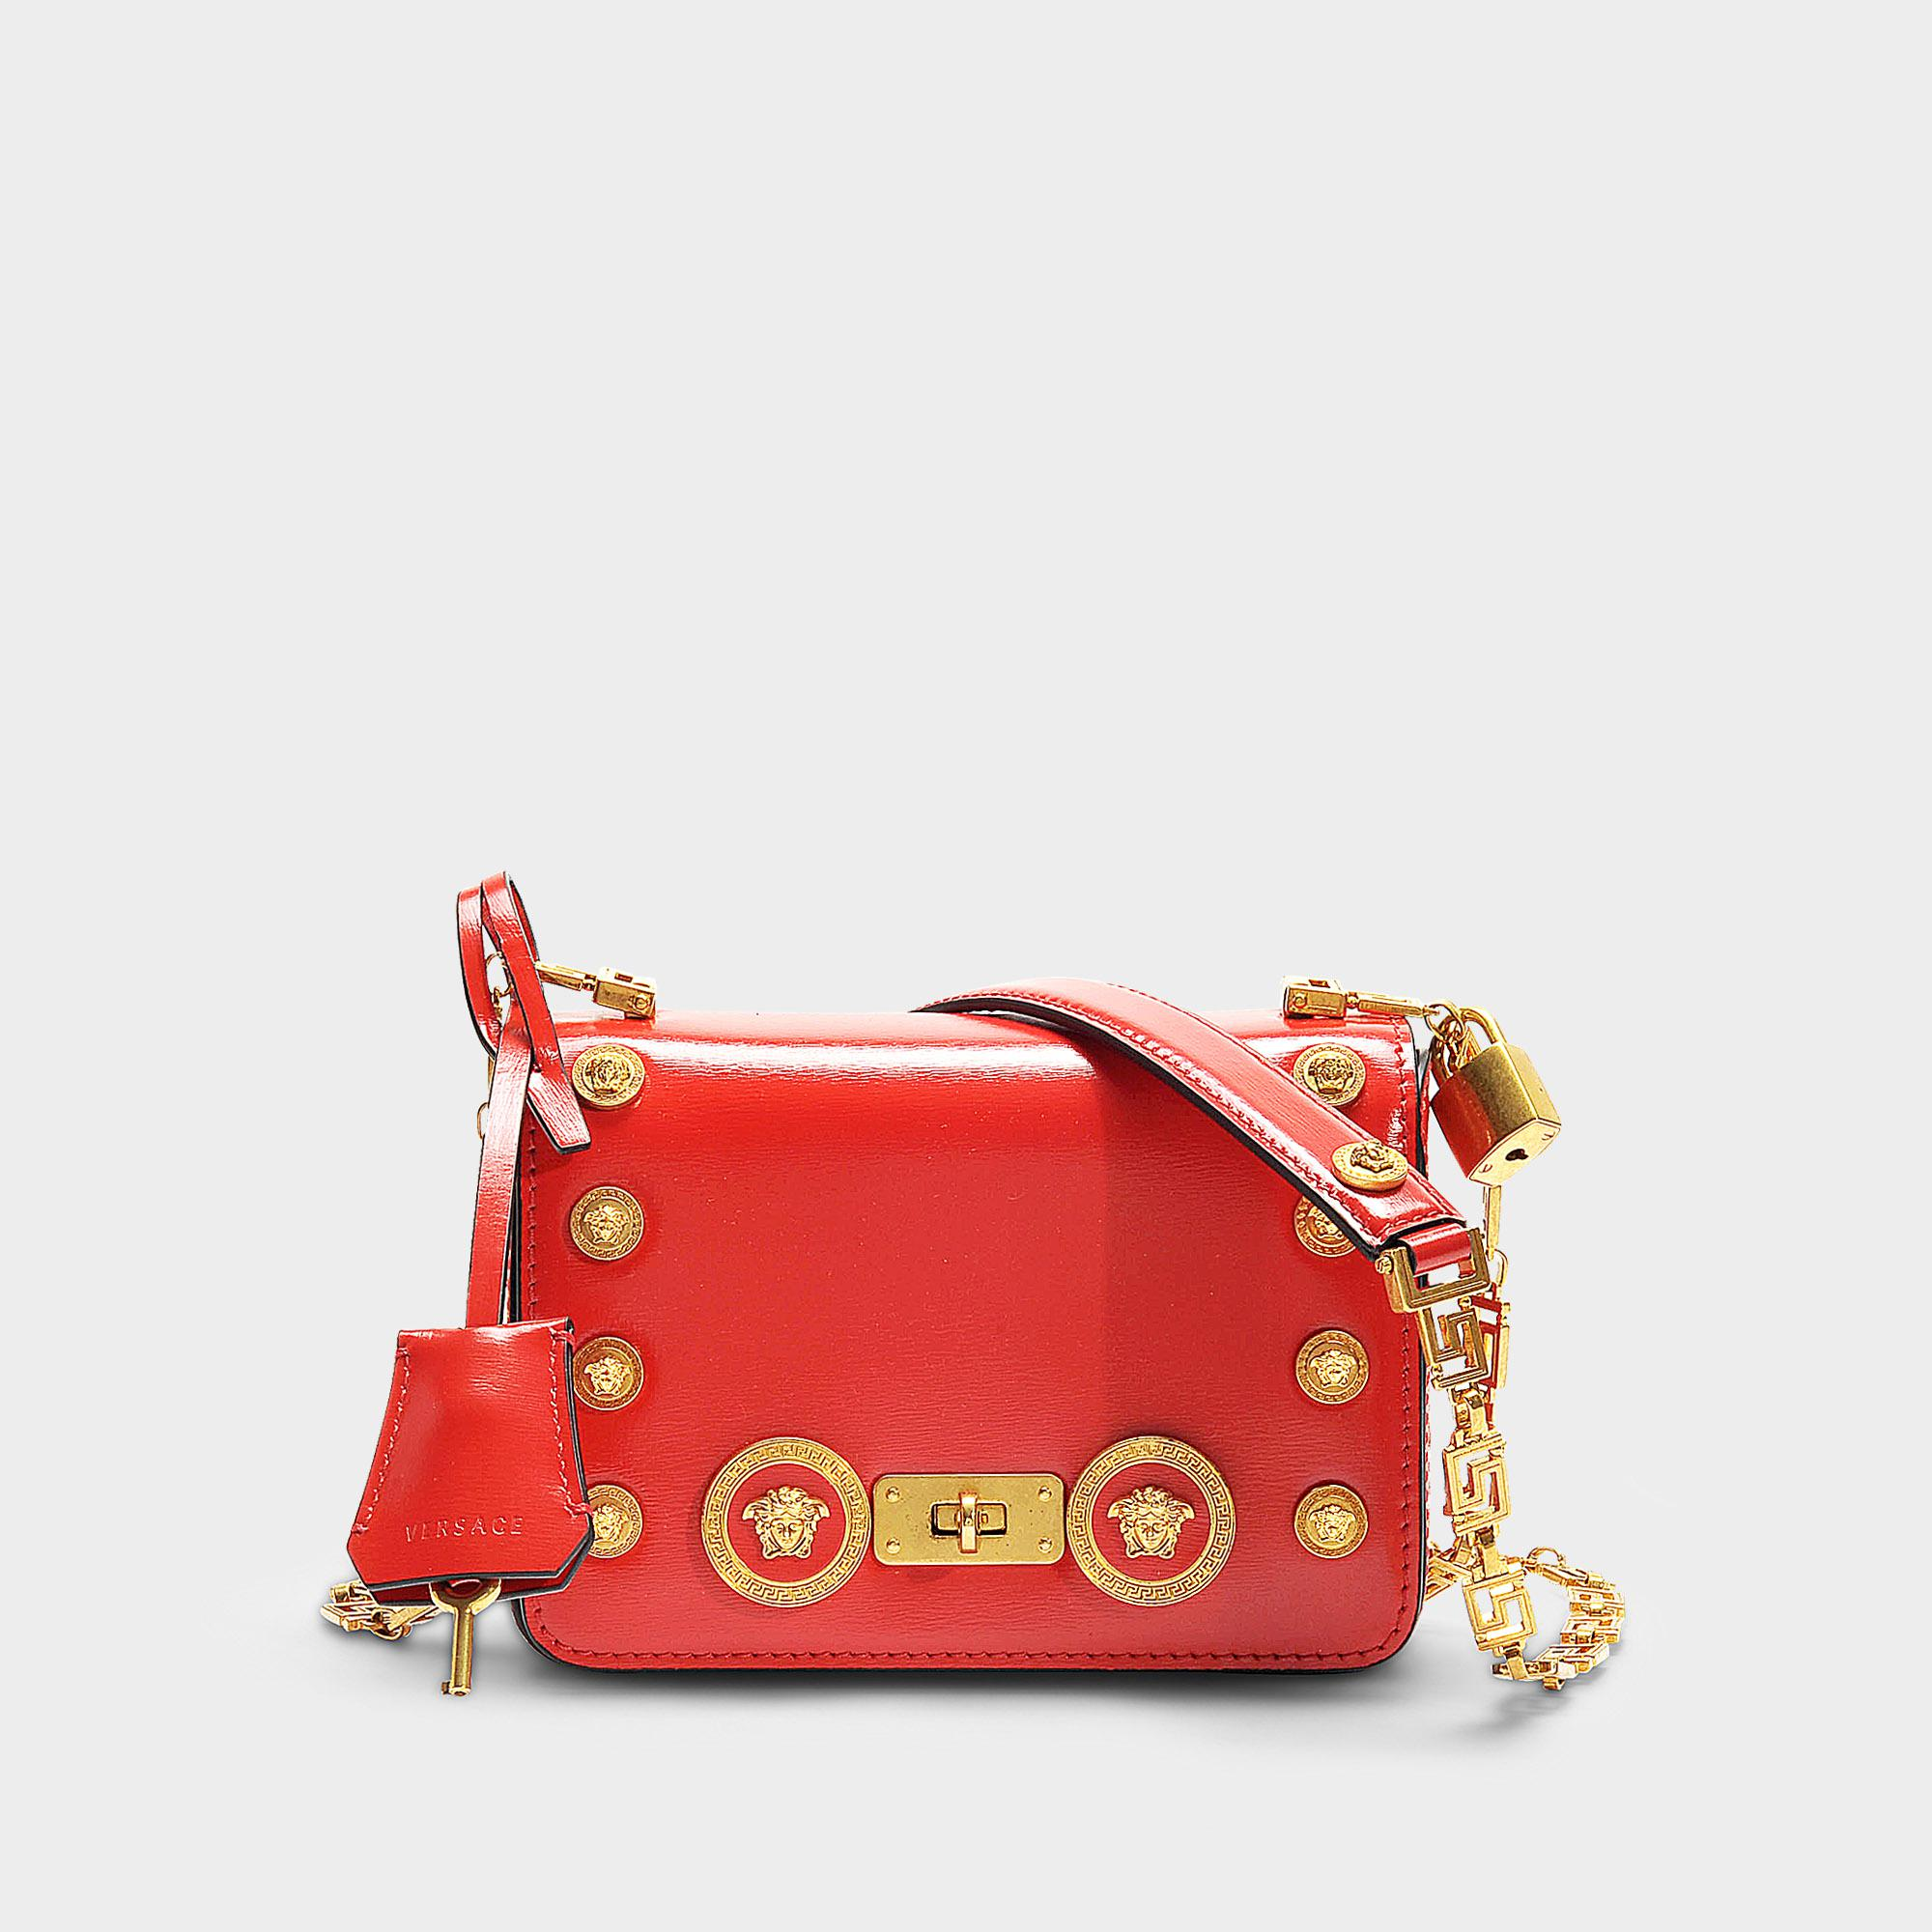 85eb1af818 Lyst - Versace Icon Shoulder Bag With Medusa Studs In Red Calfskin ...